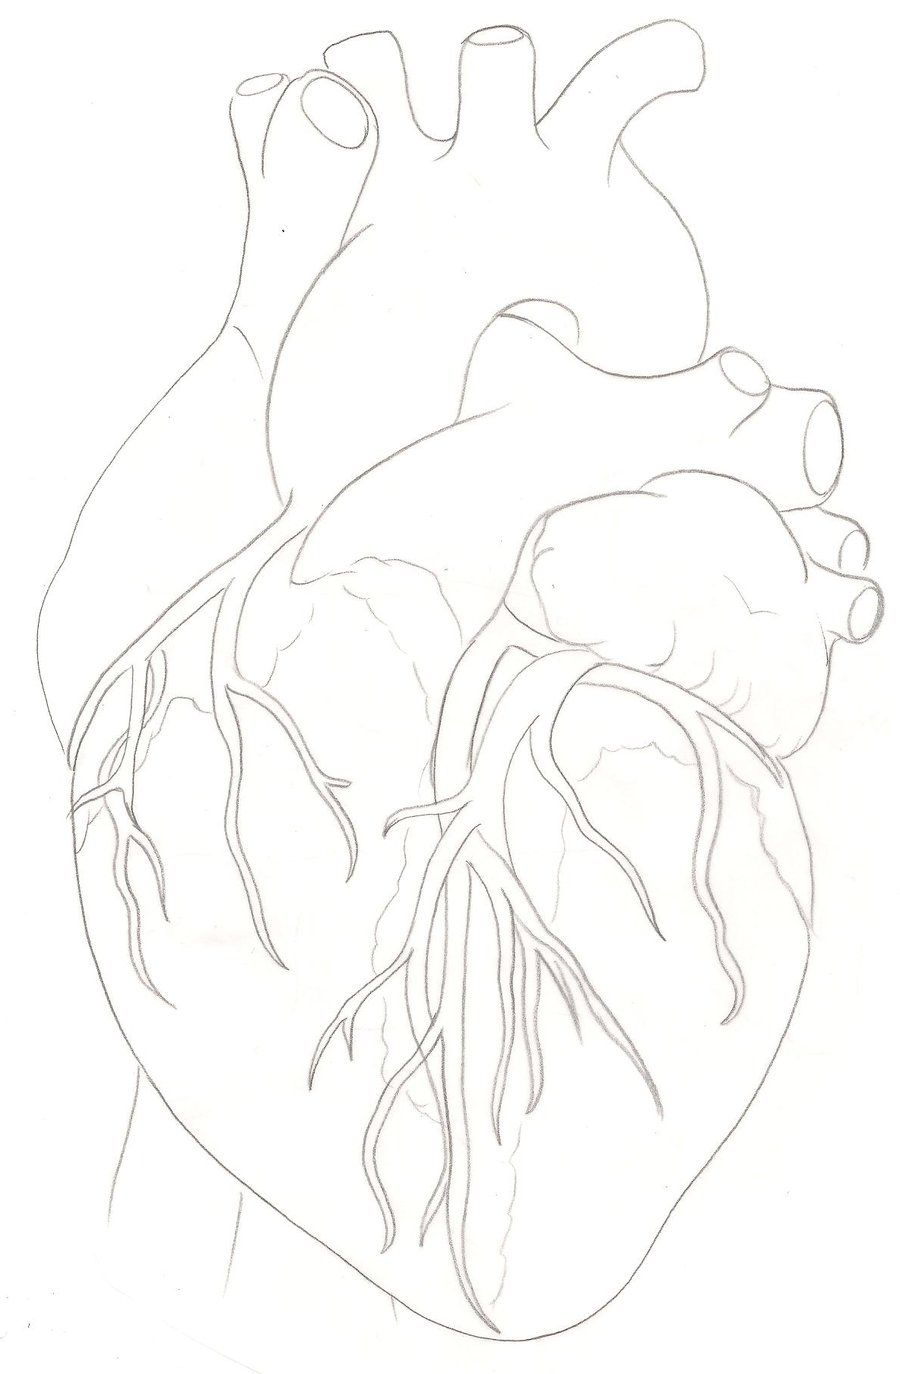 Human Heart Tattoo by ~Metacharis on deviantART | art | Pinterest ...